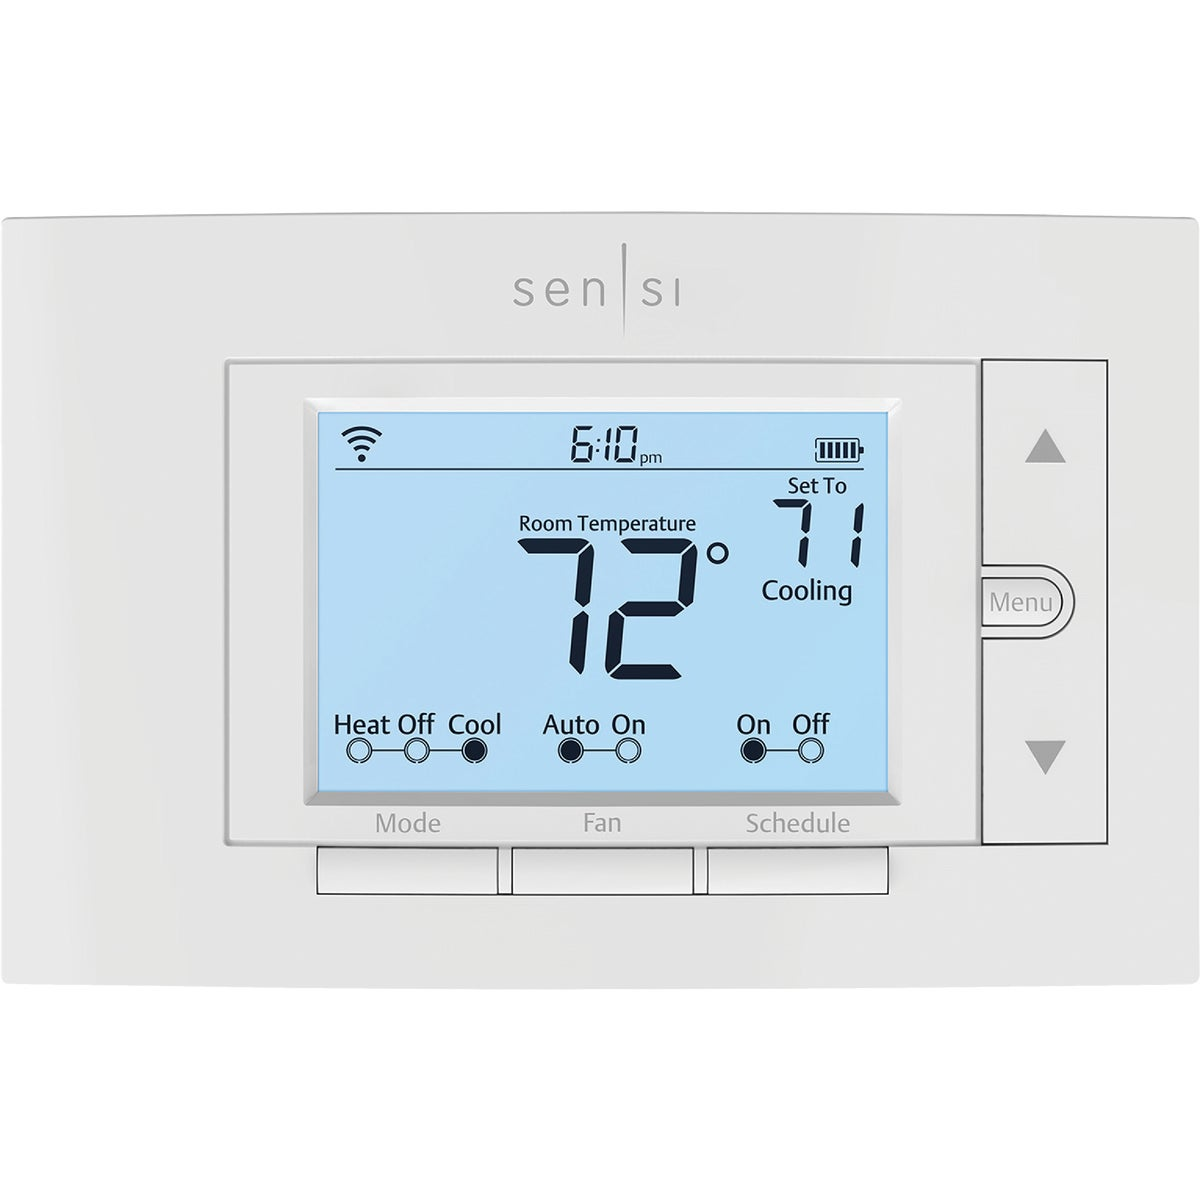 WIFI THERMOSTAT - UP500W by White Rodgers Emersn